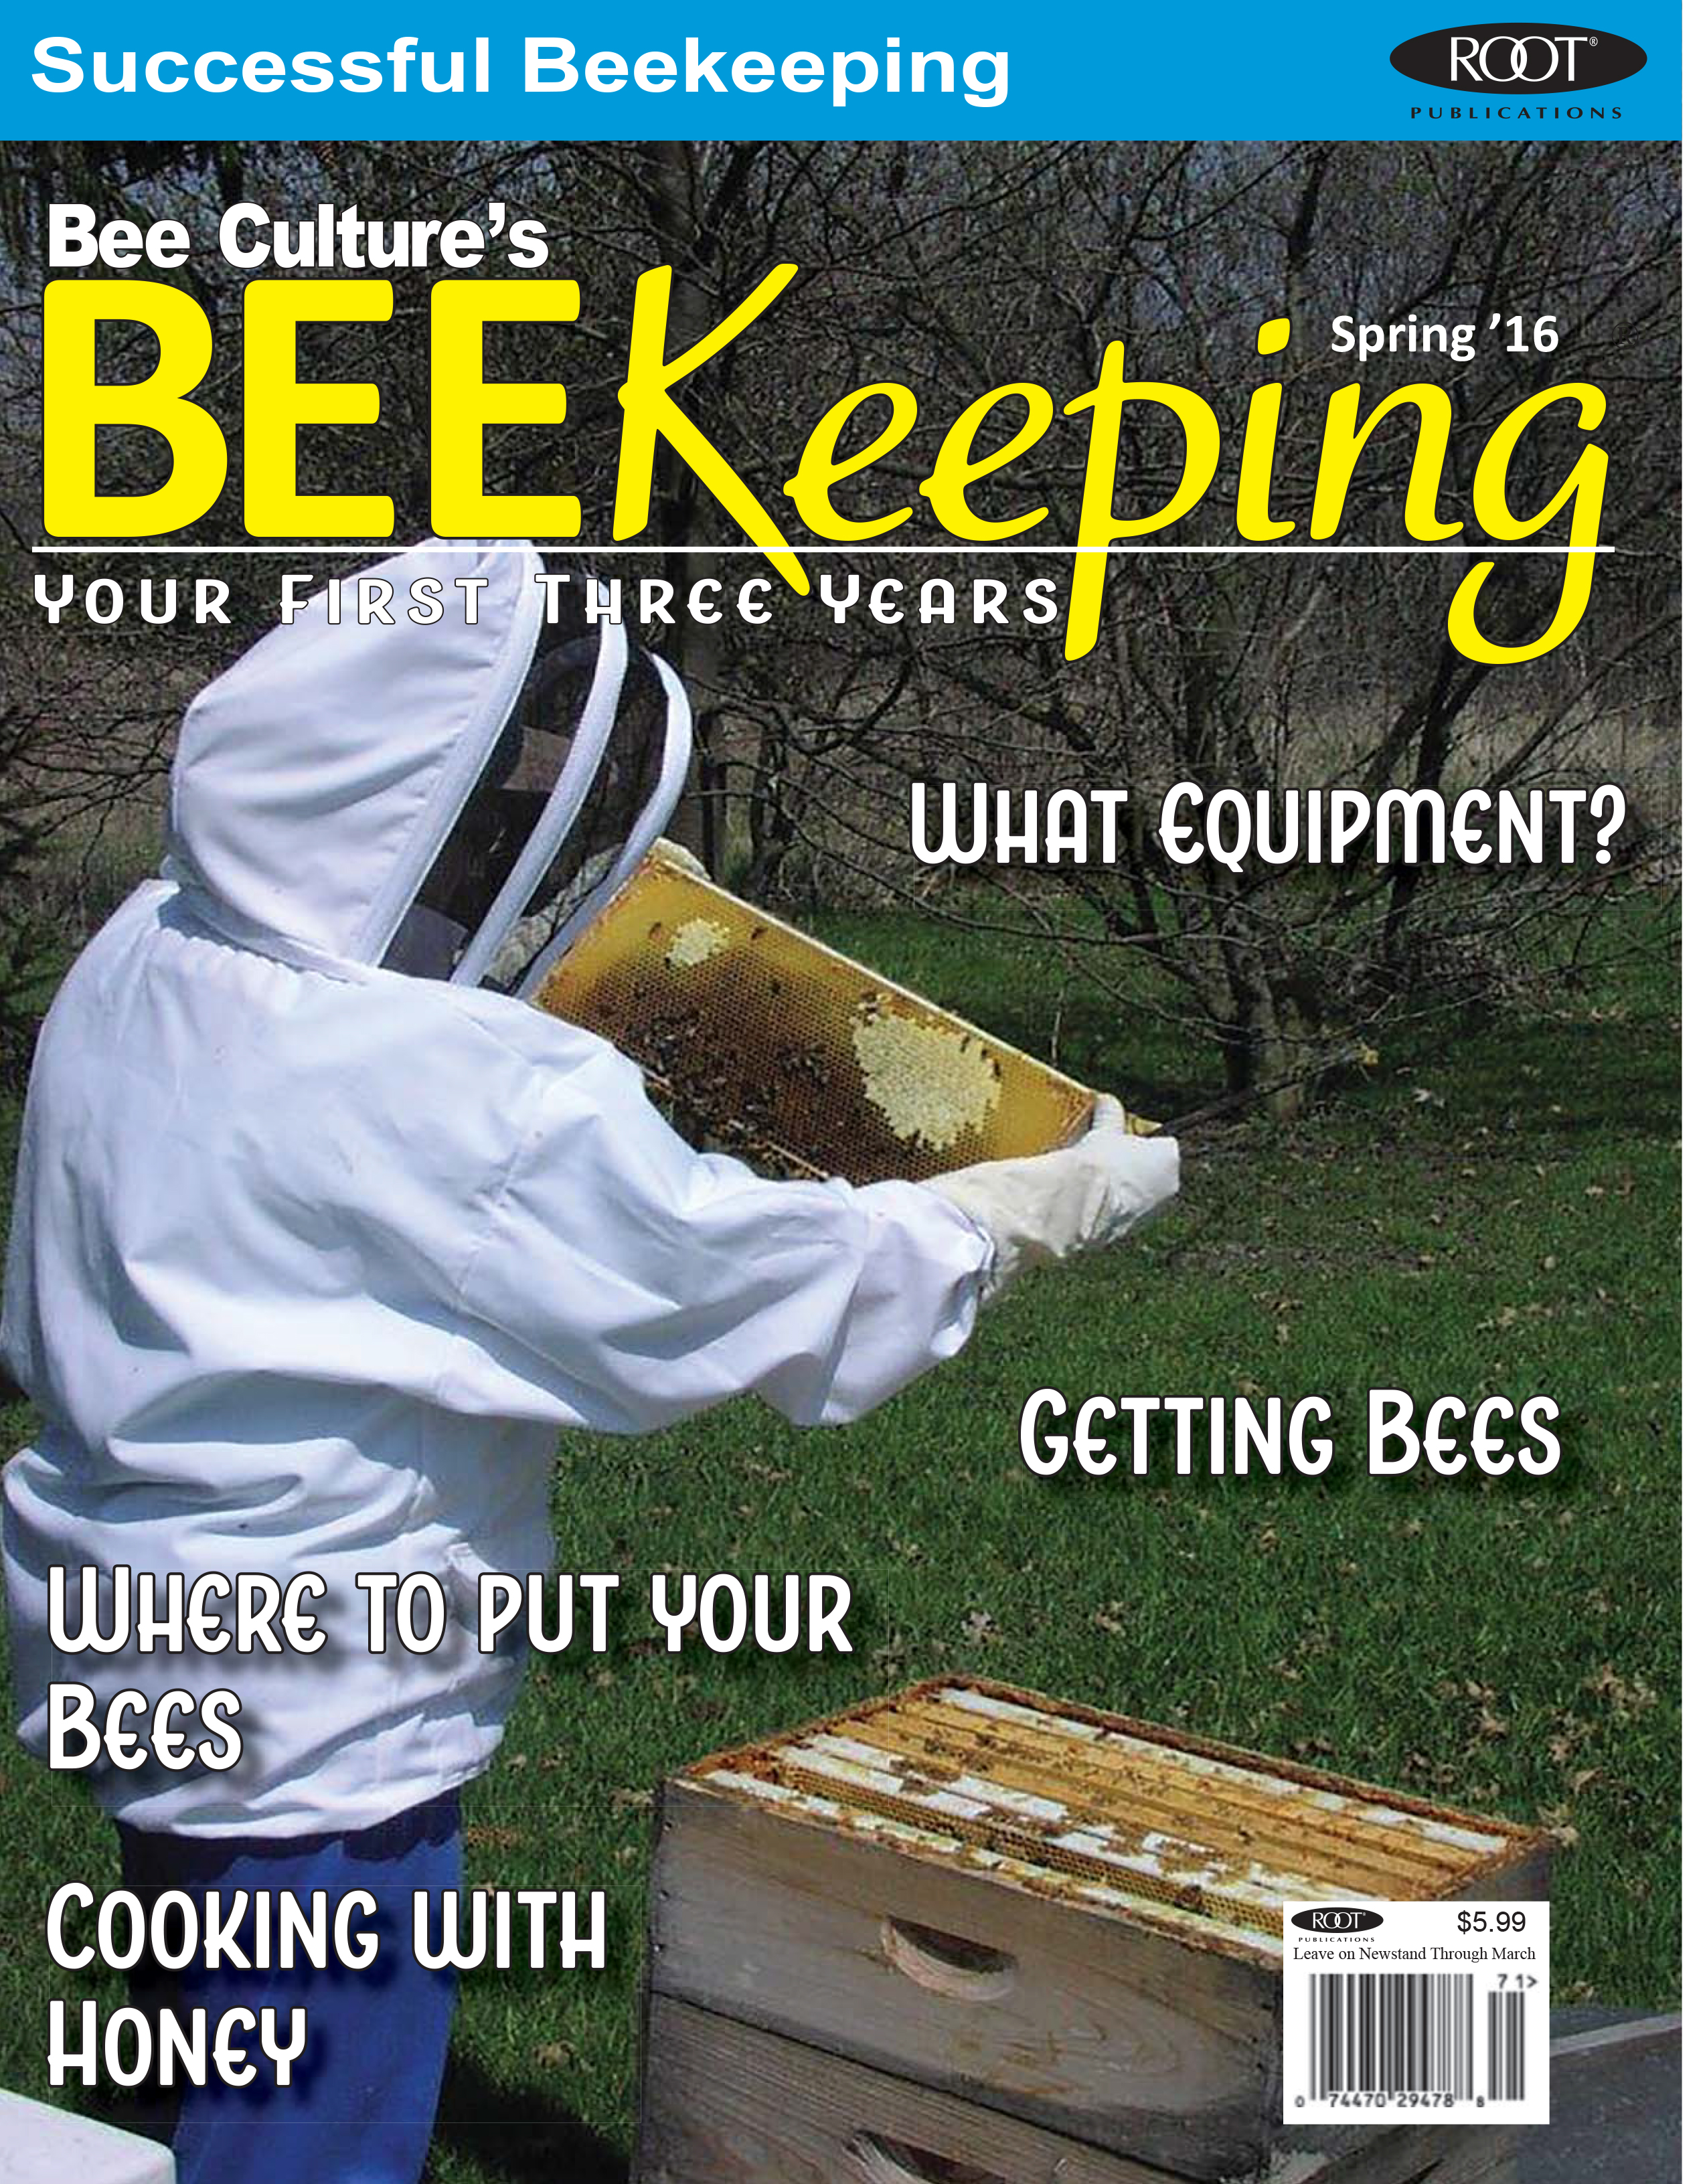 PRESS RELEASE: Bee Culture Magazine Launches Brand New Beekeeping Magazine Focusing On Beginners.